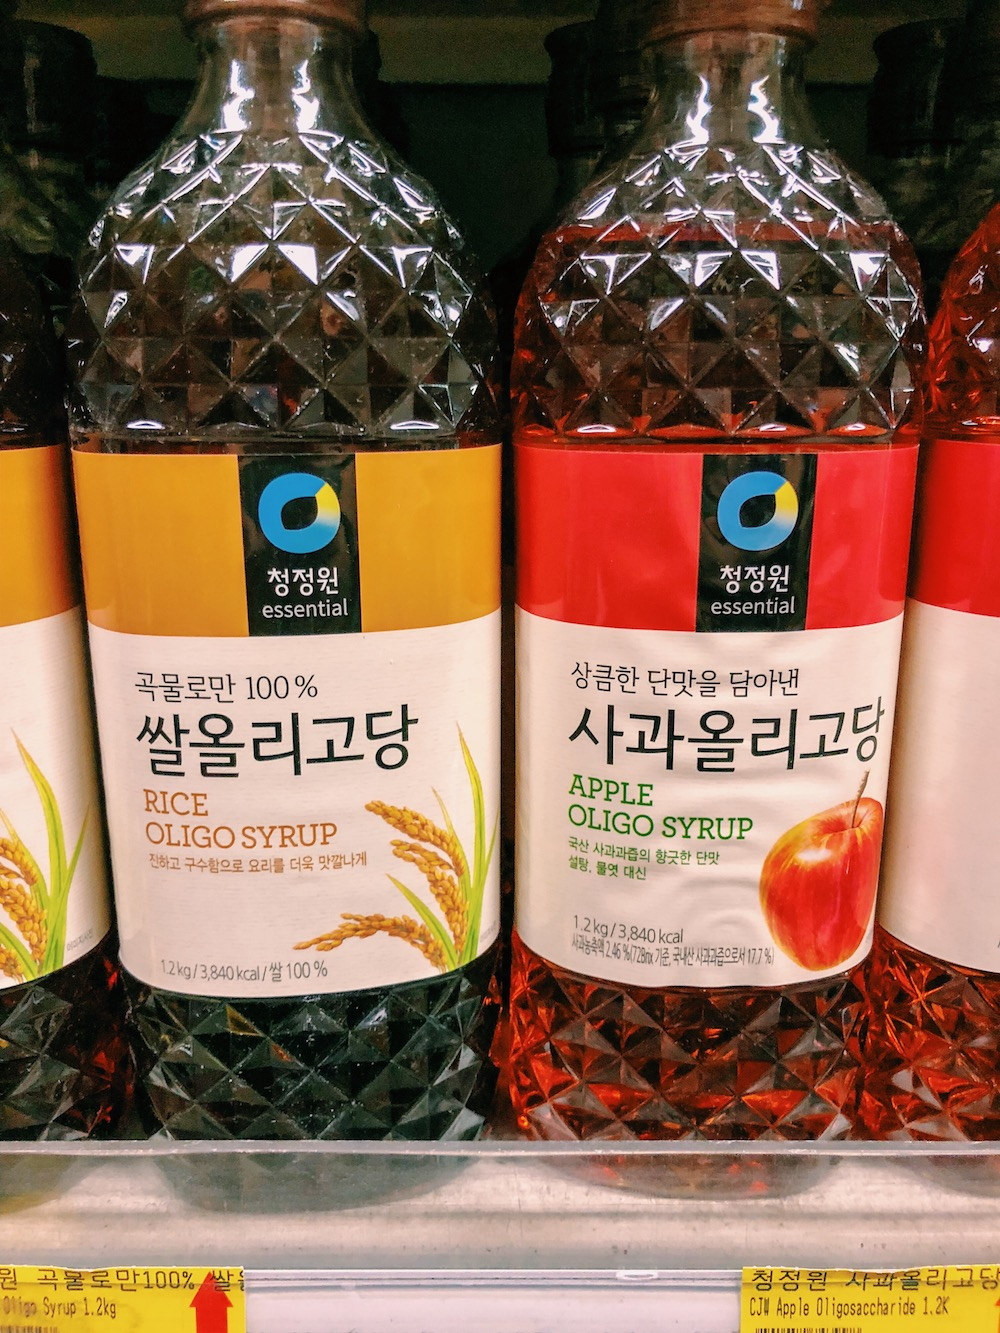 Rice and Apple syrups